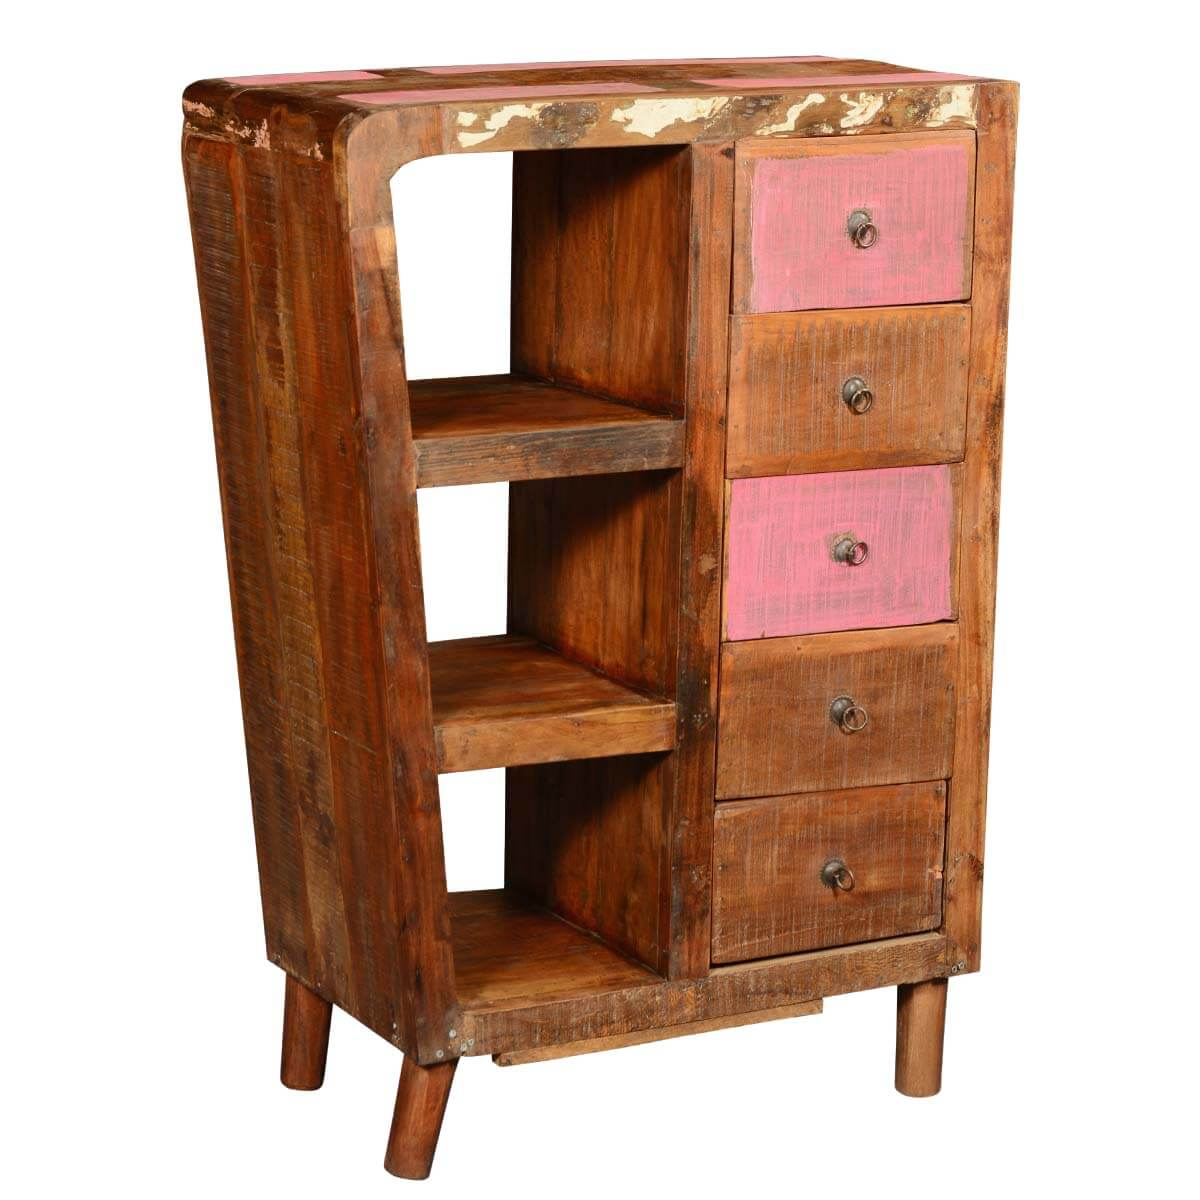 Rustic Reclaimed Wood 5 Drawer Storage Cabinet w Display